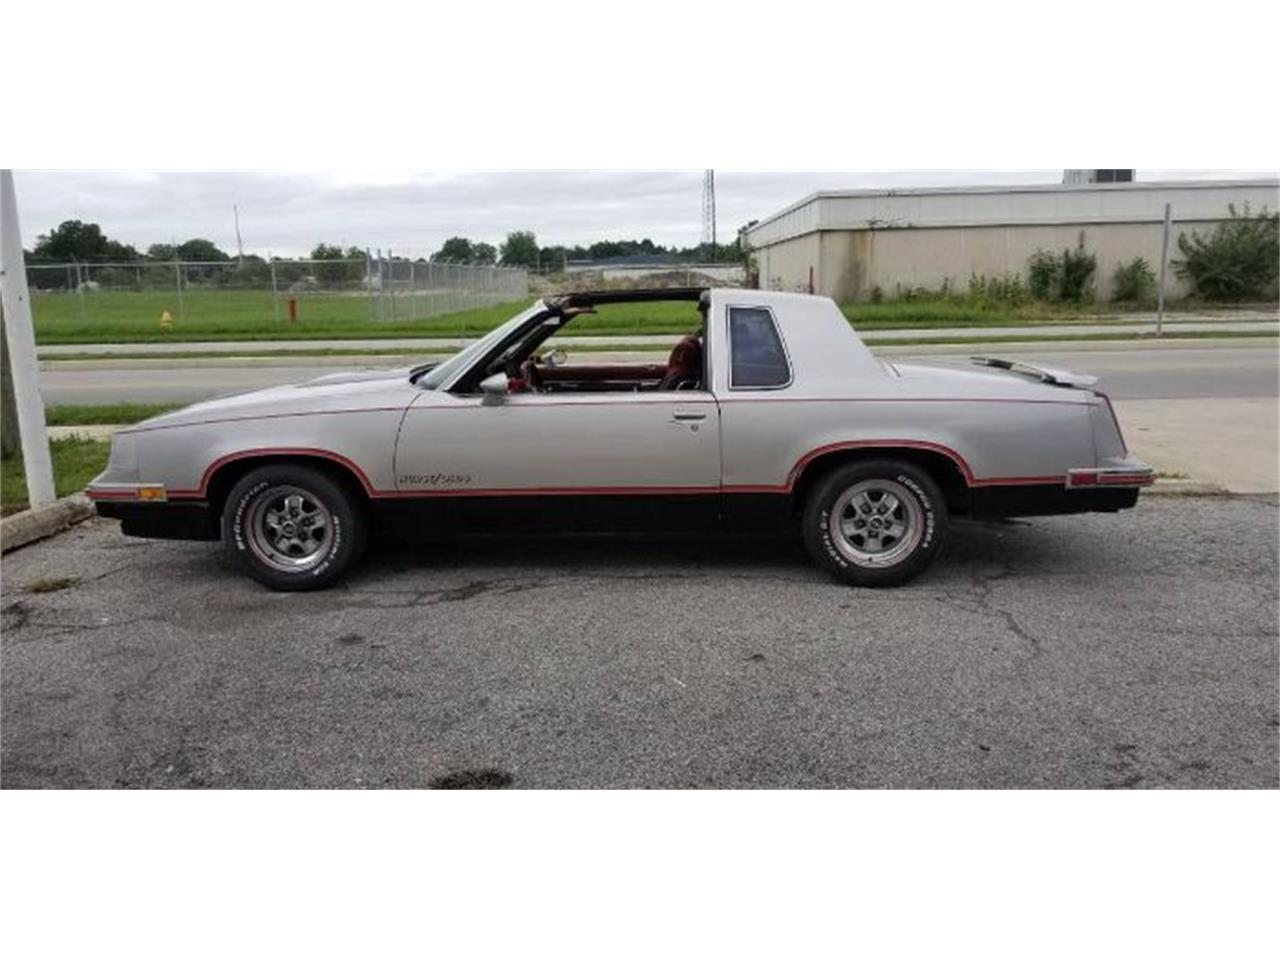 For Sale: 1984 Oldsmobile Cutlass in Cadillac, Michigan